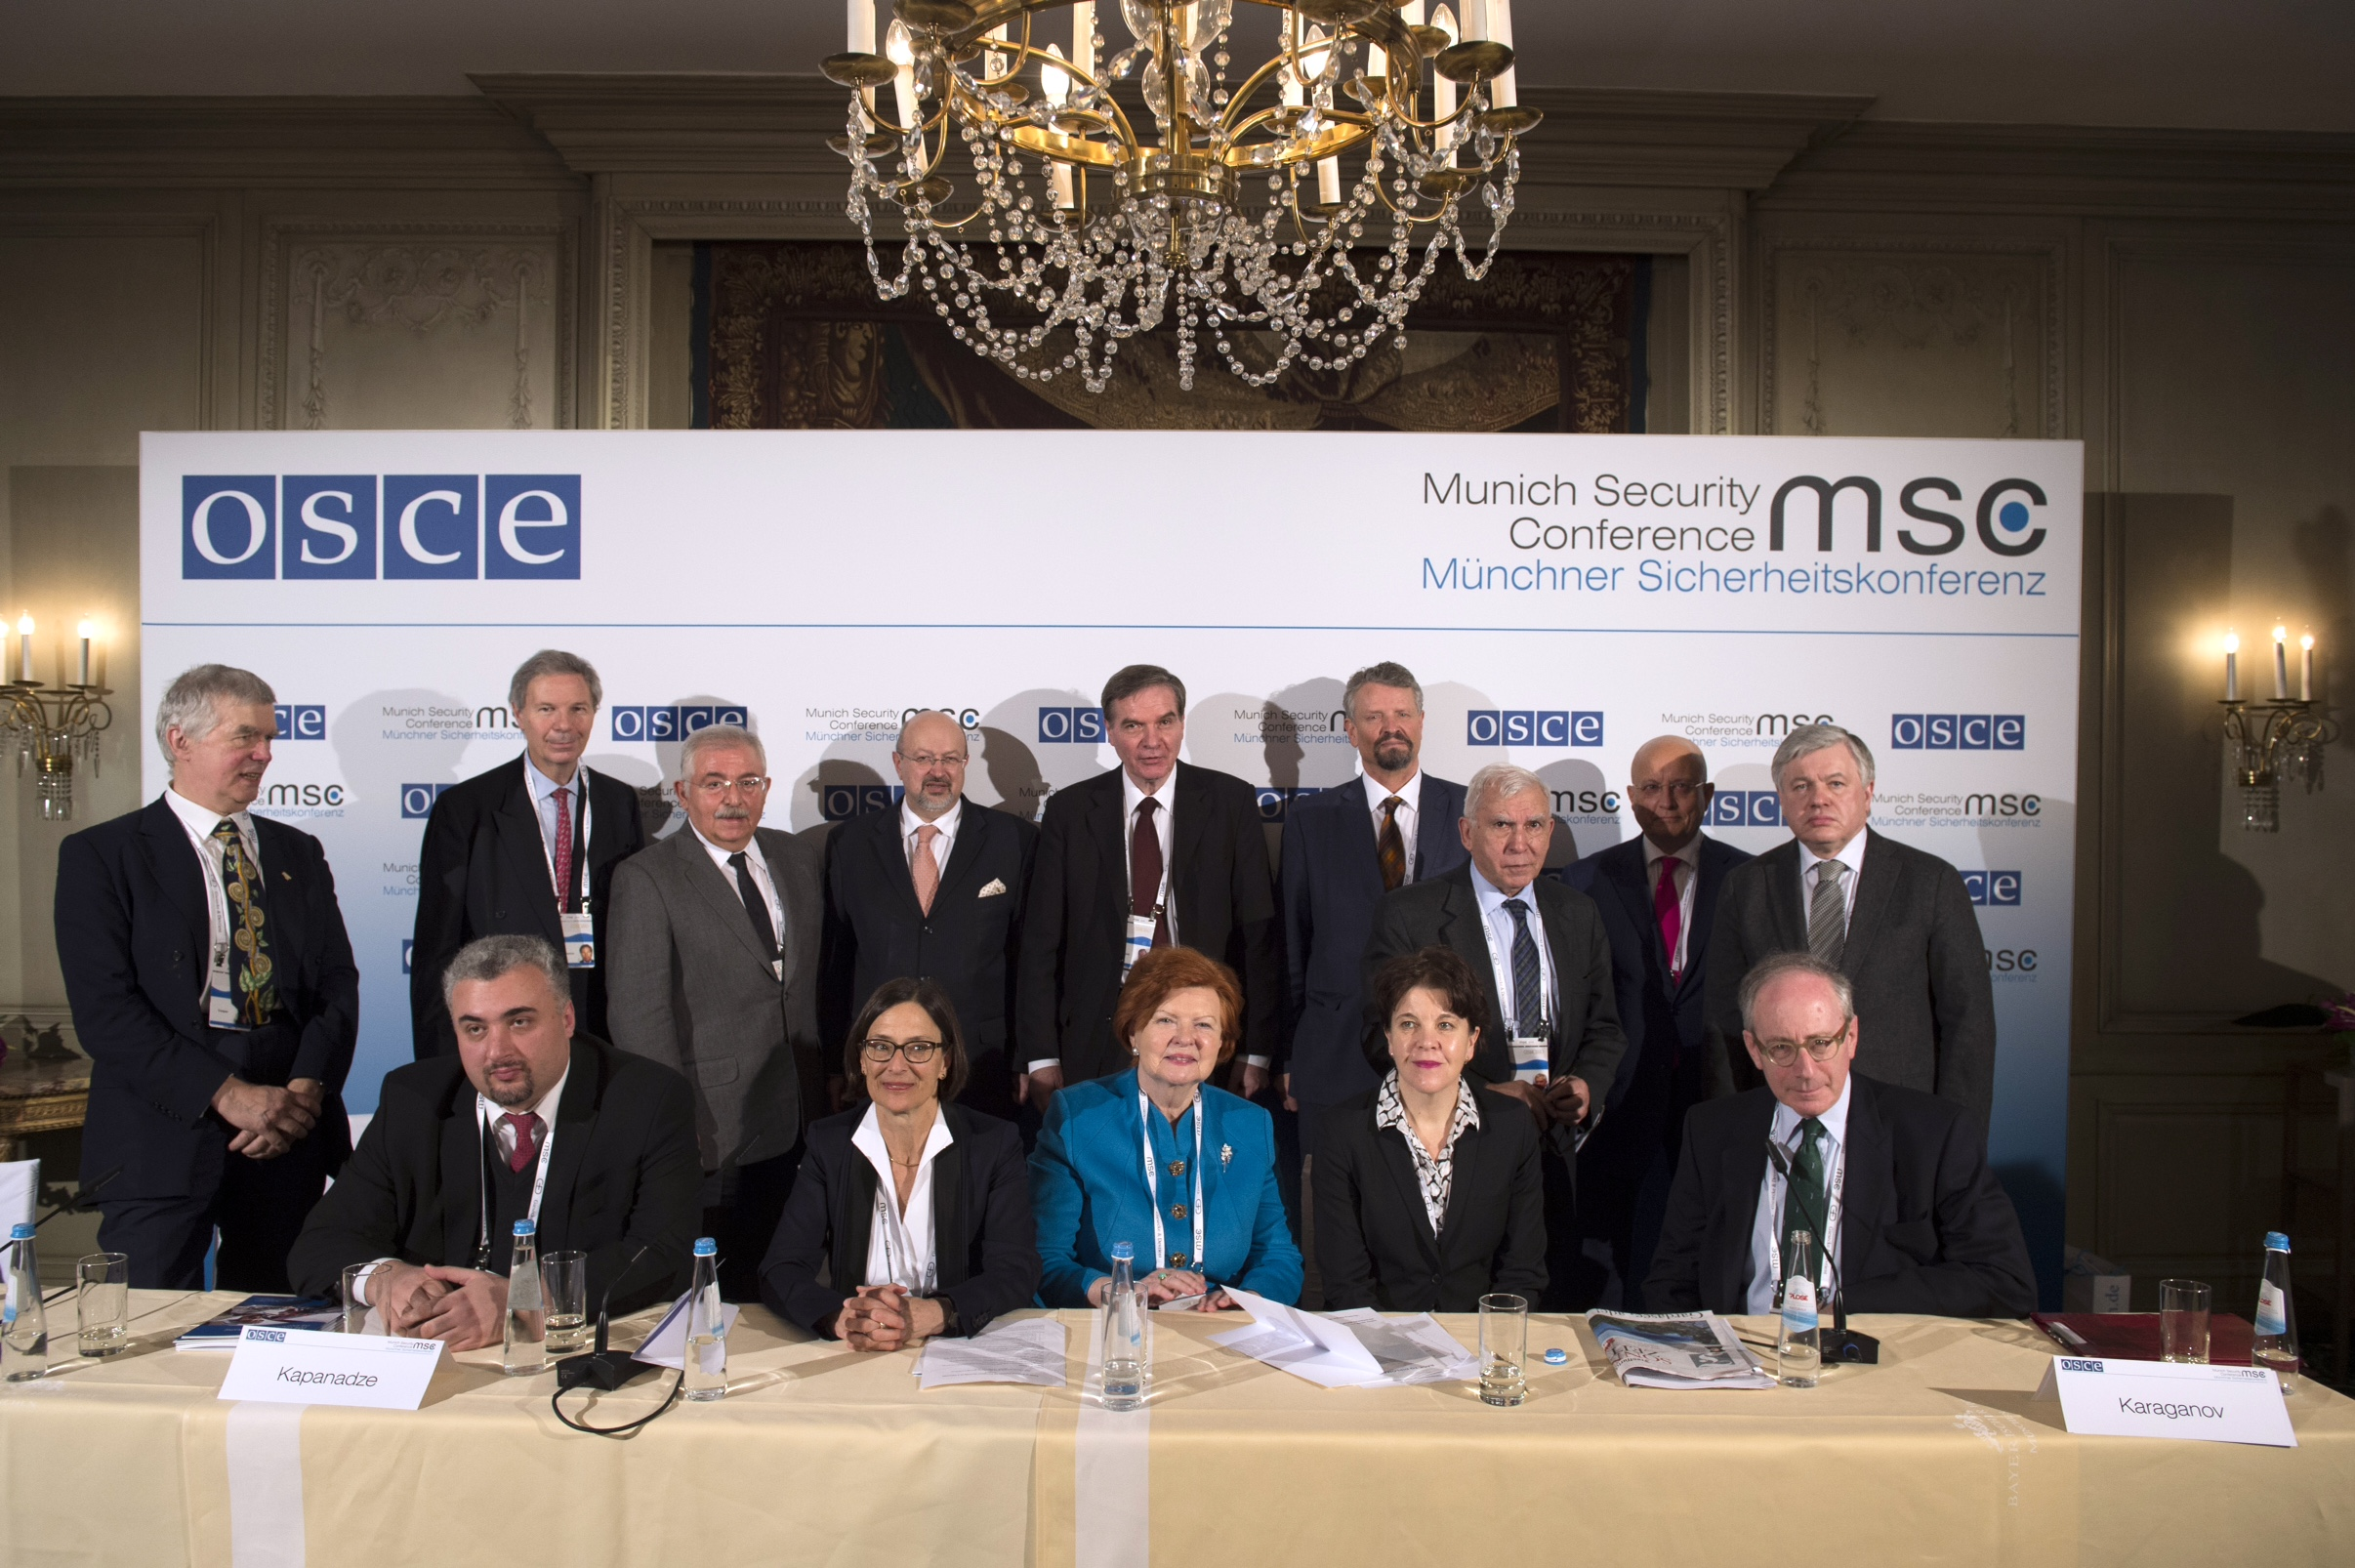 Munich Security Conference 2016/OSCE Panel of Eminent  Persons